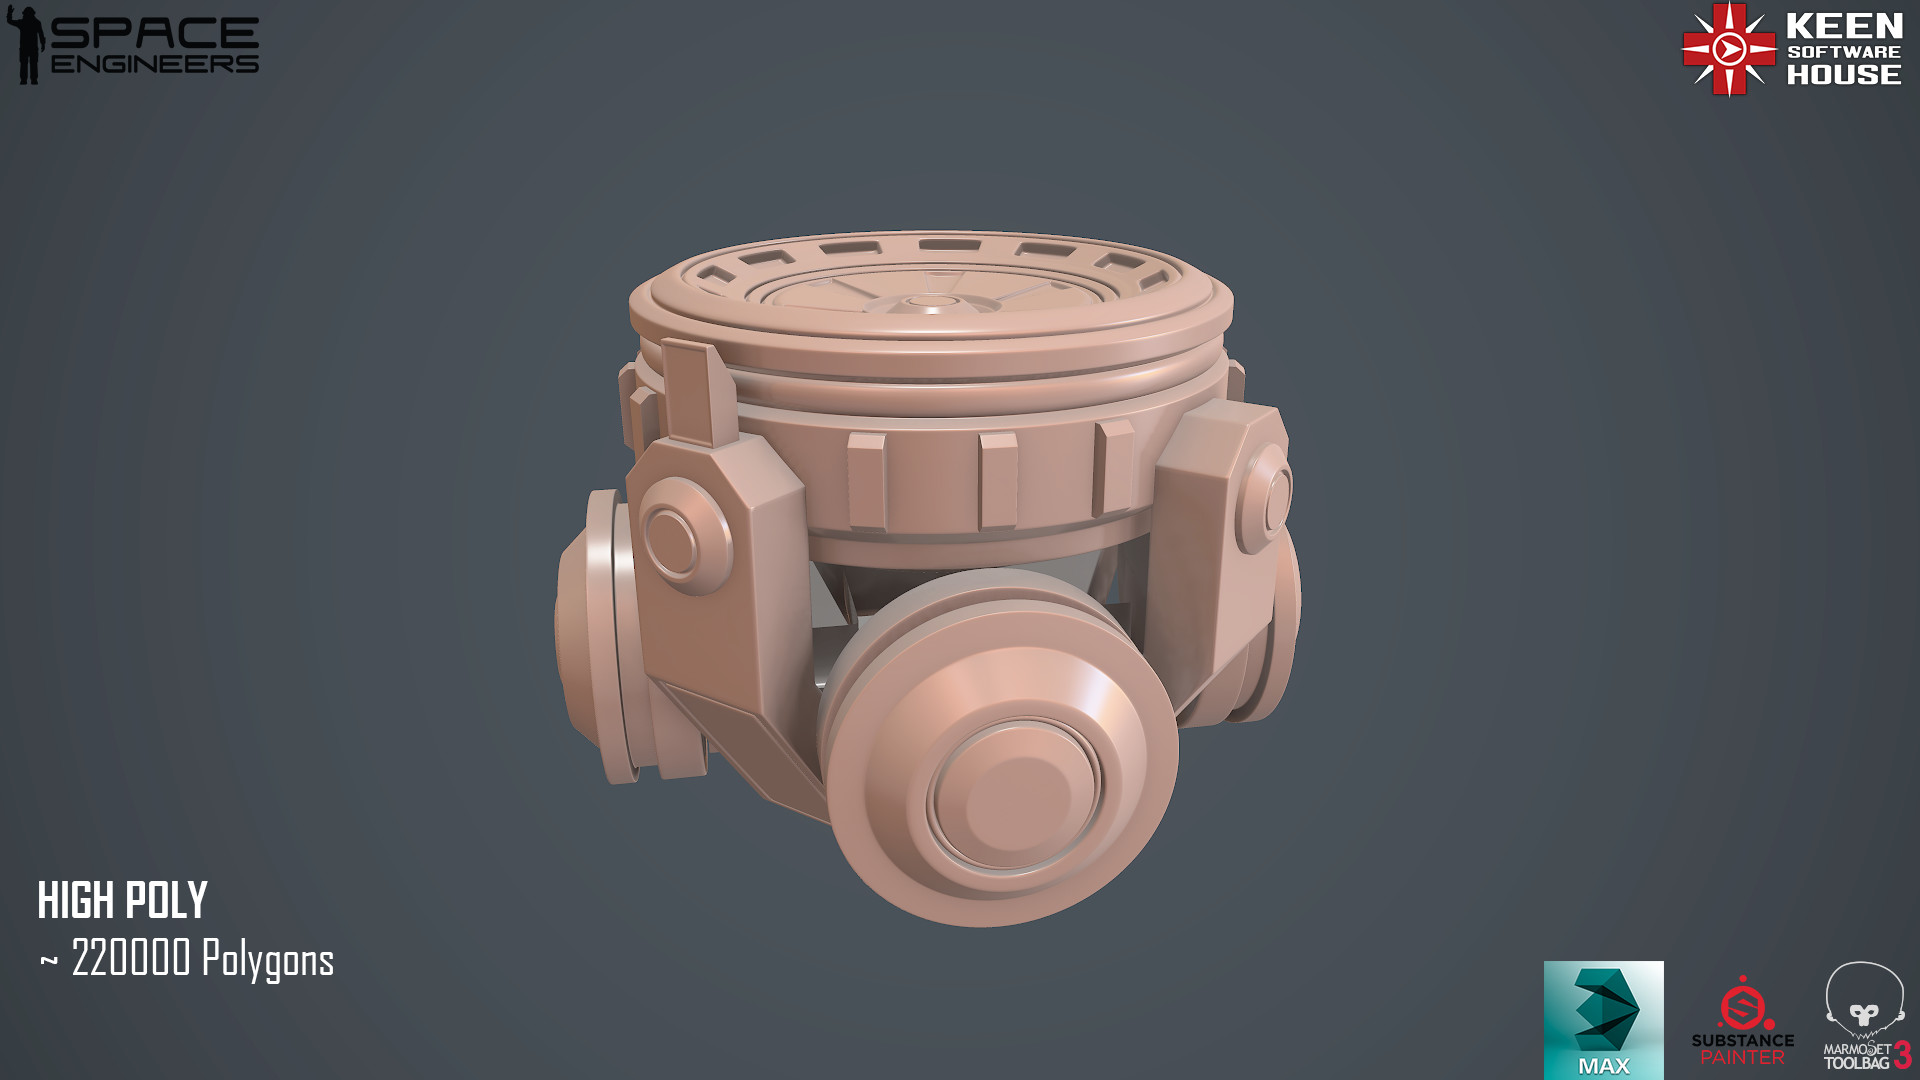 High Poly Clay Render